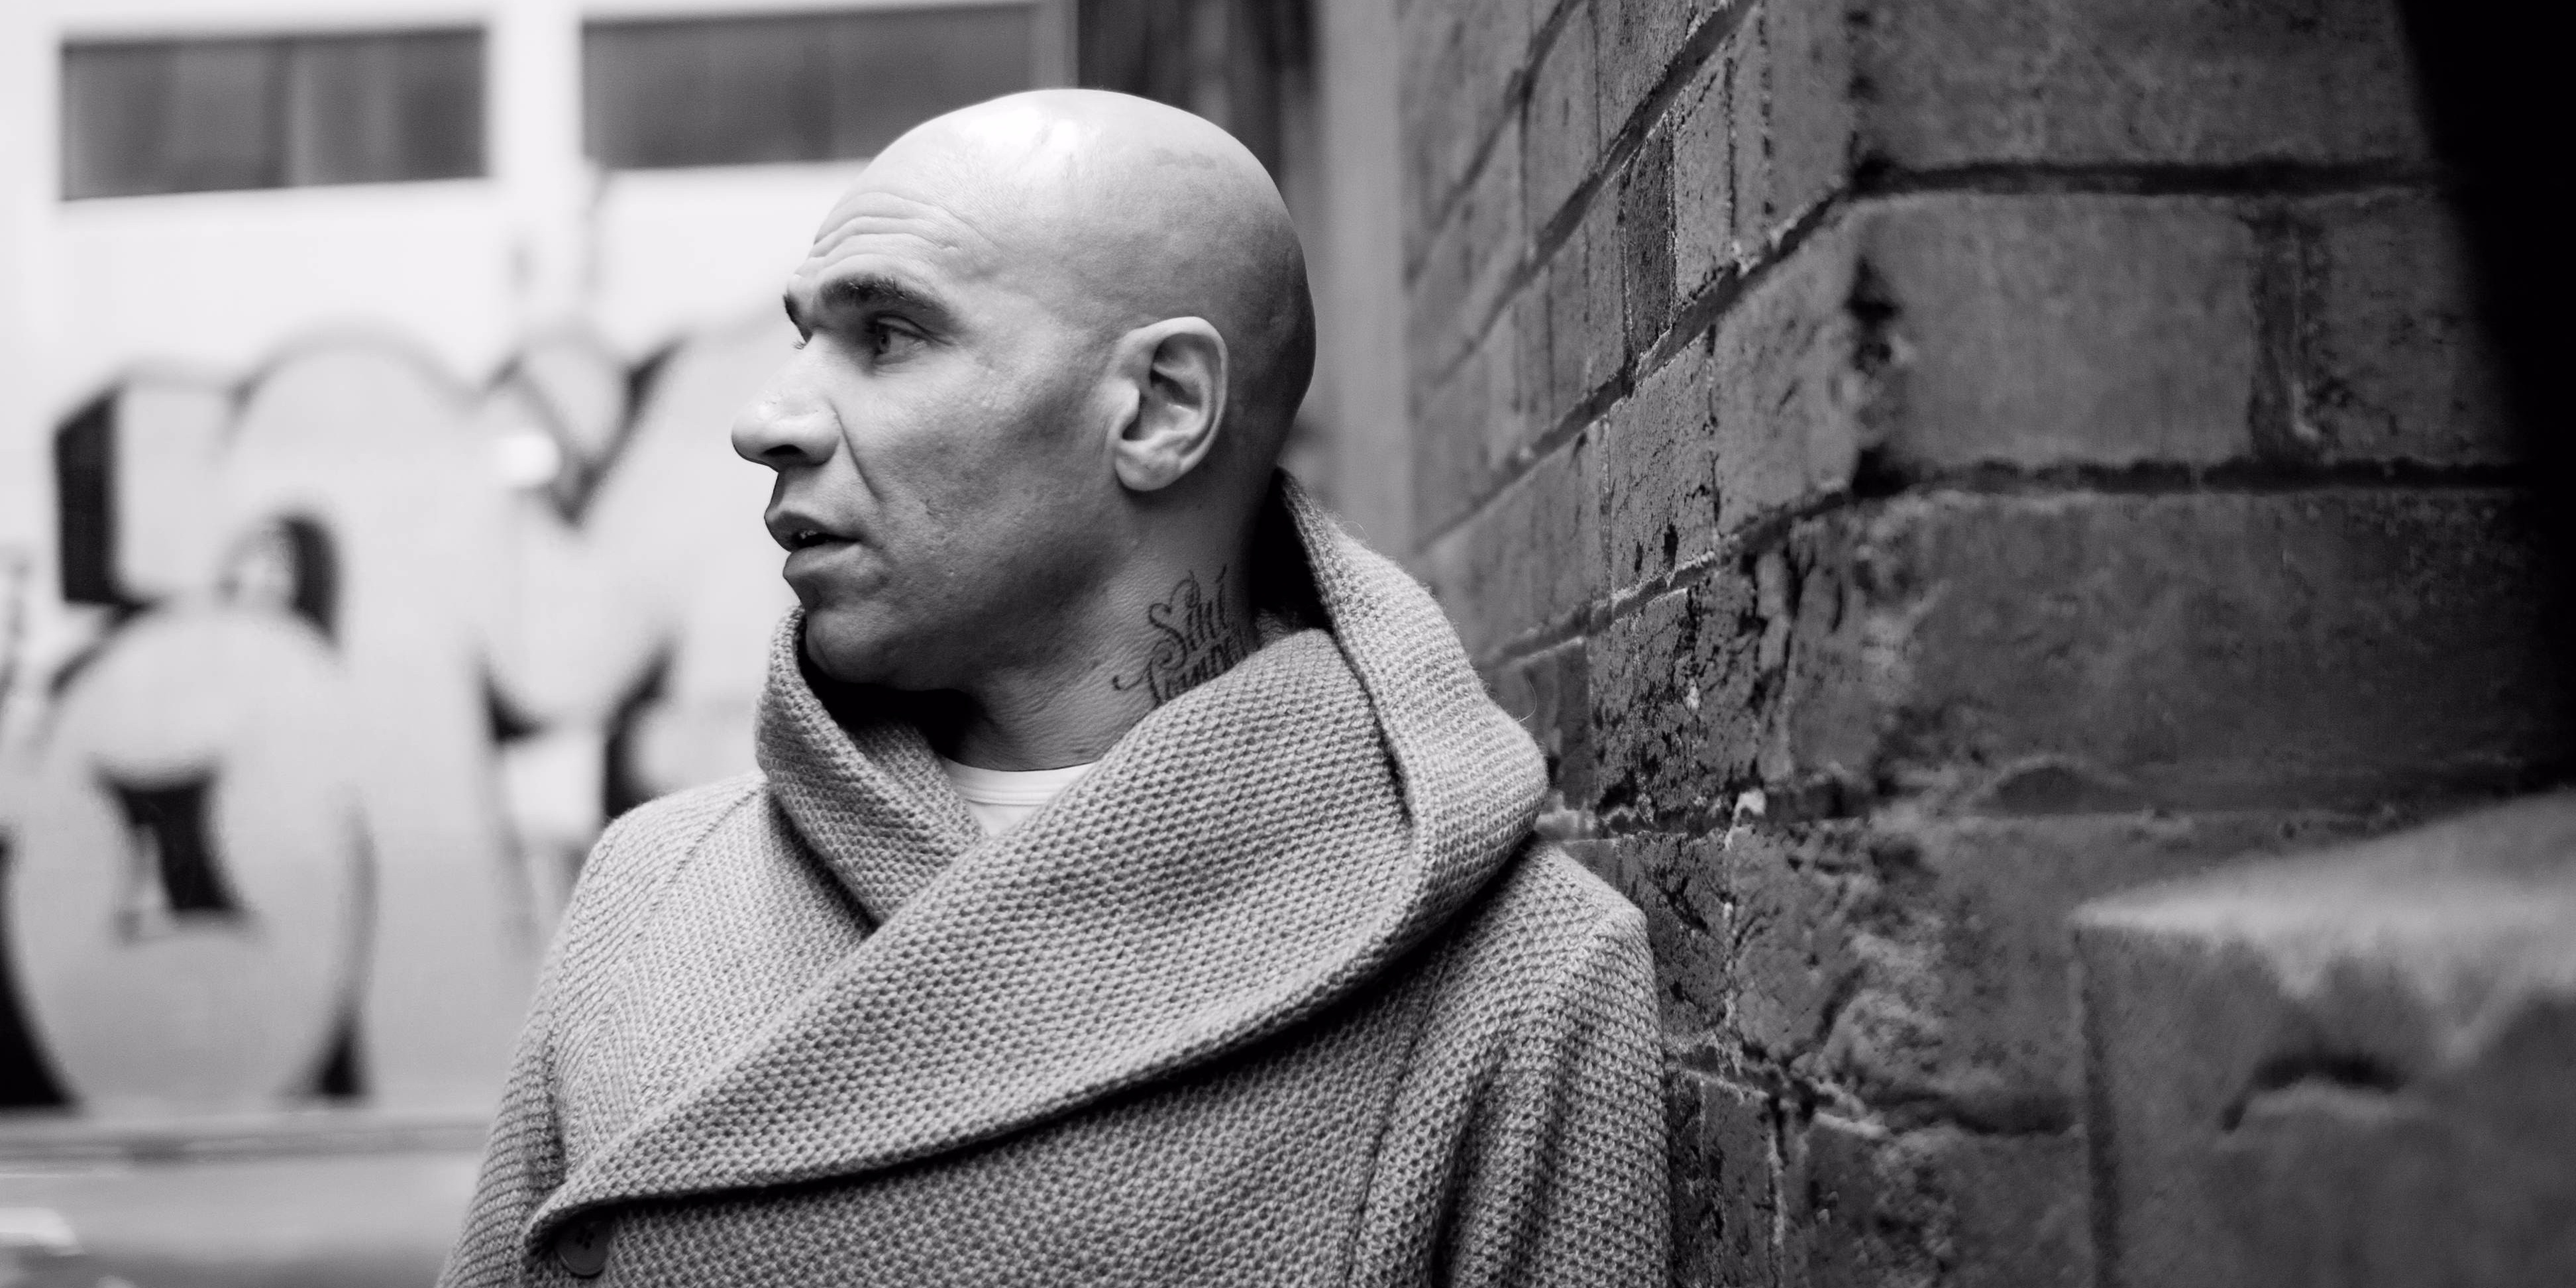 Drum & bass pioneer Goldie returns to Singapore in April